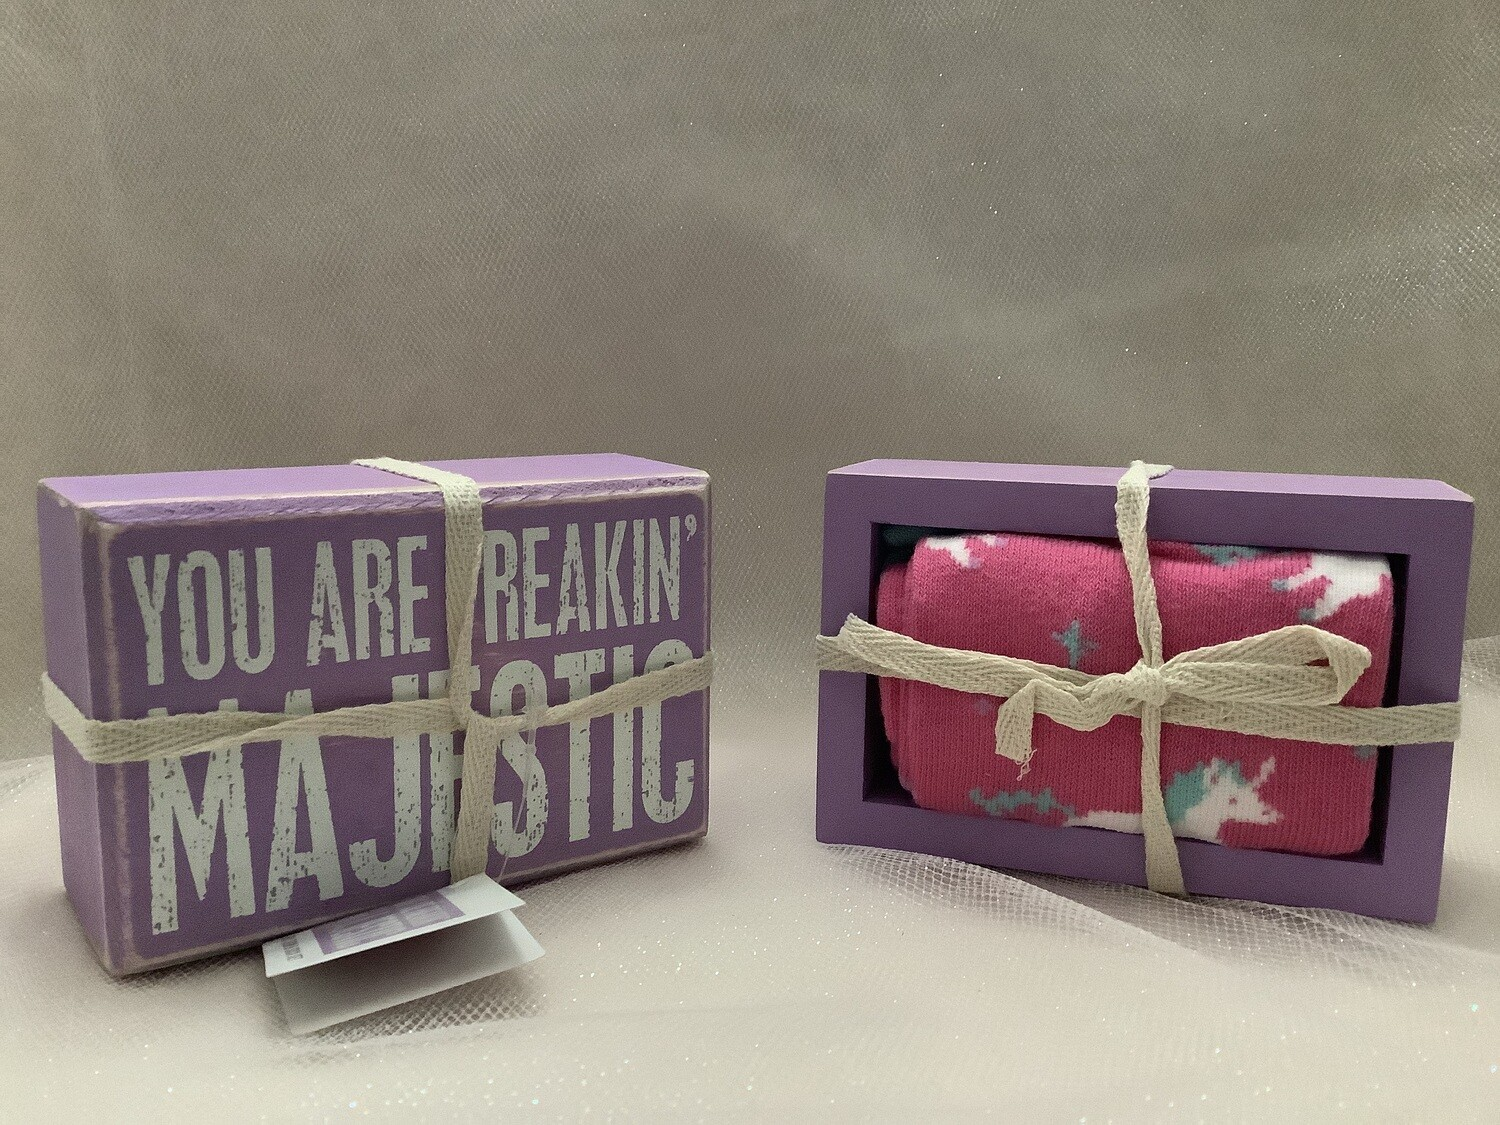 Box Sign and Sock Set - You Are Freakin' Majestic